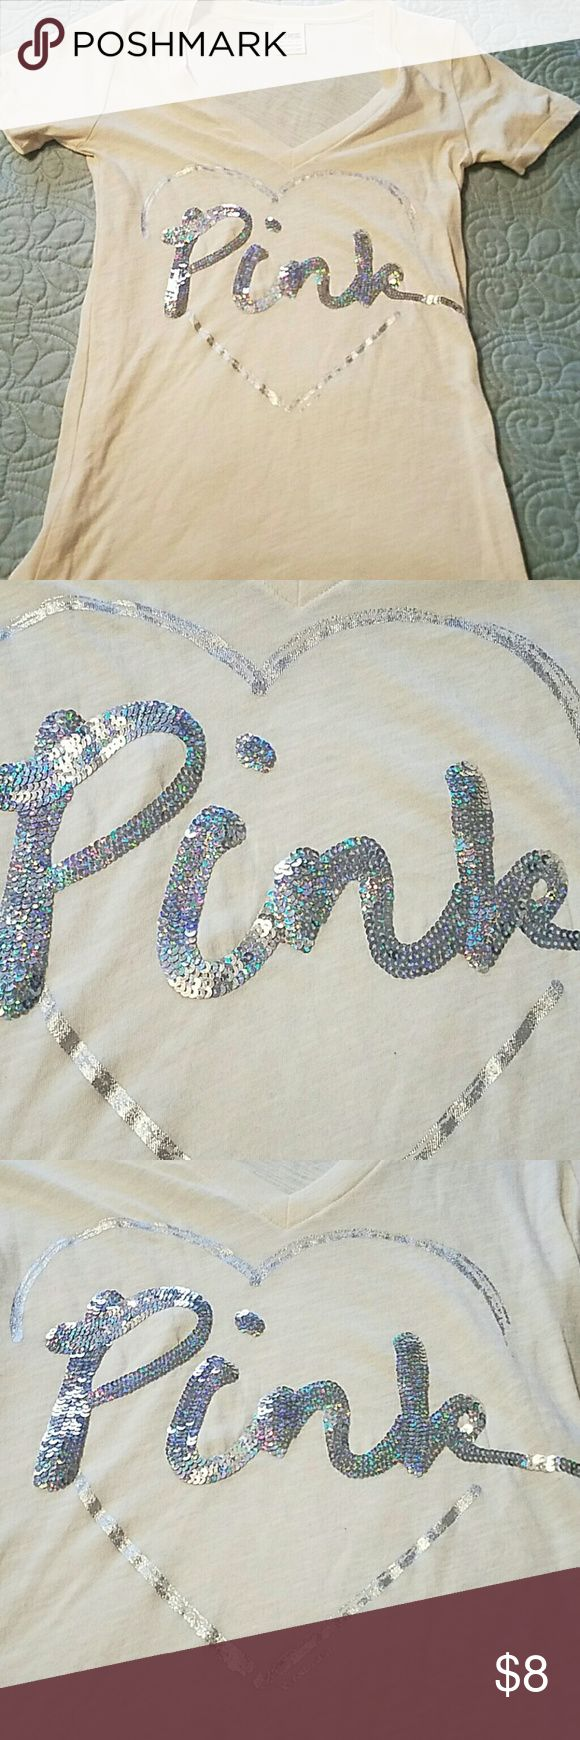 Cute VS Pink top Top is cream color with silver heart and sequins Victoria's Secret Tops Tees - Short Sleeve